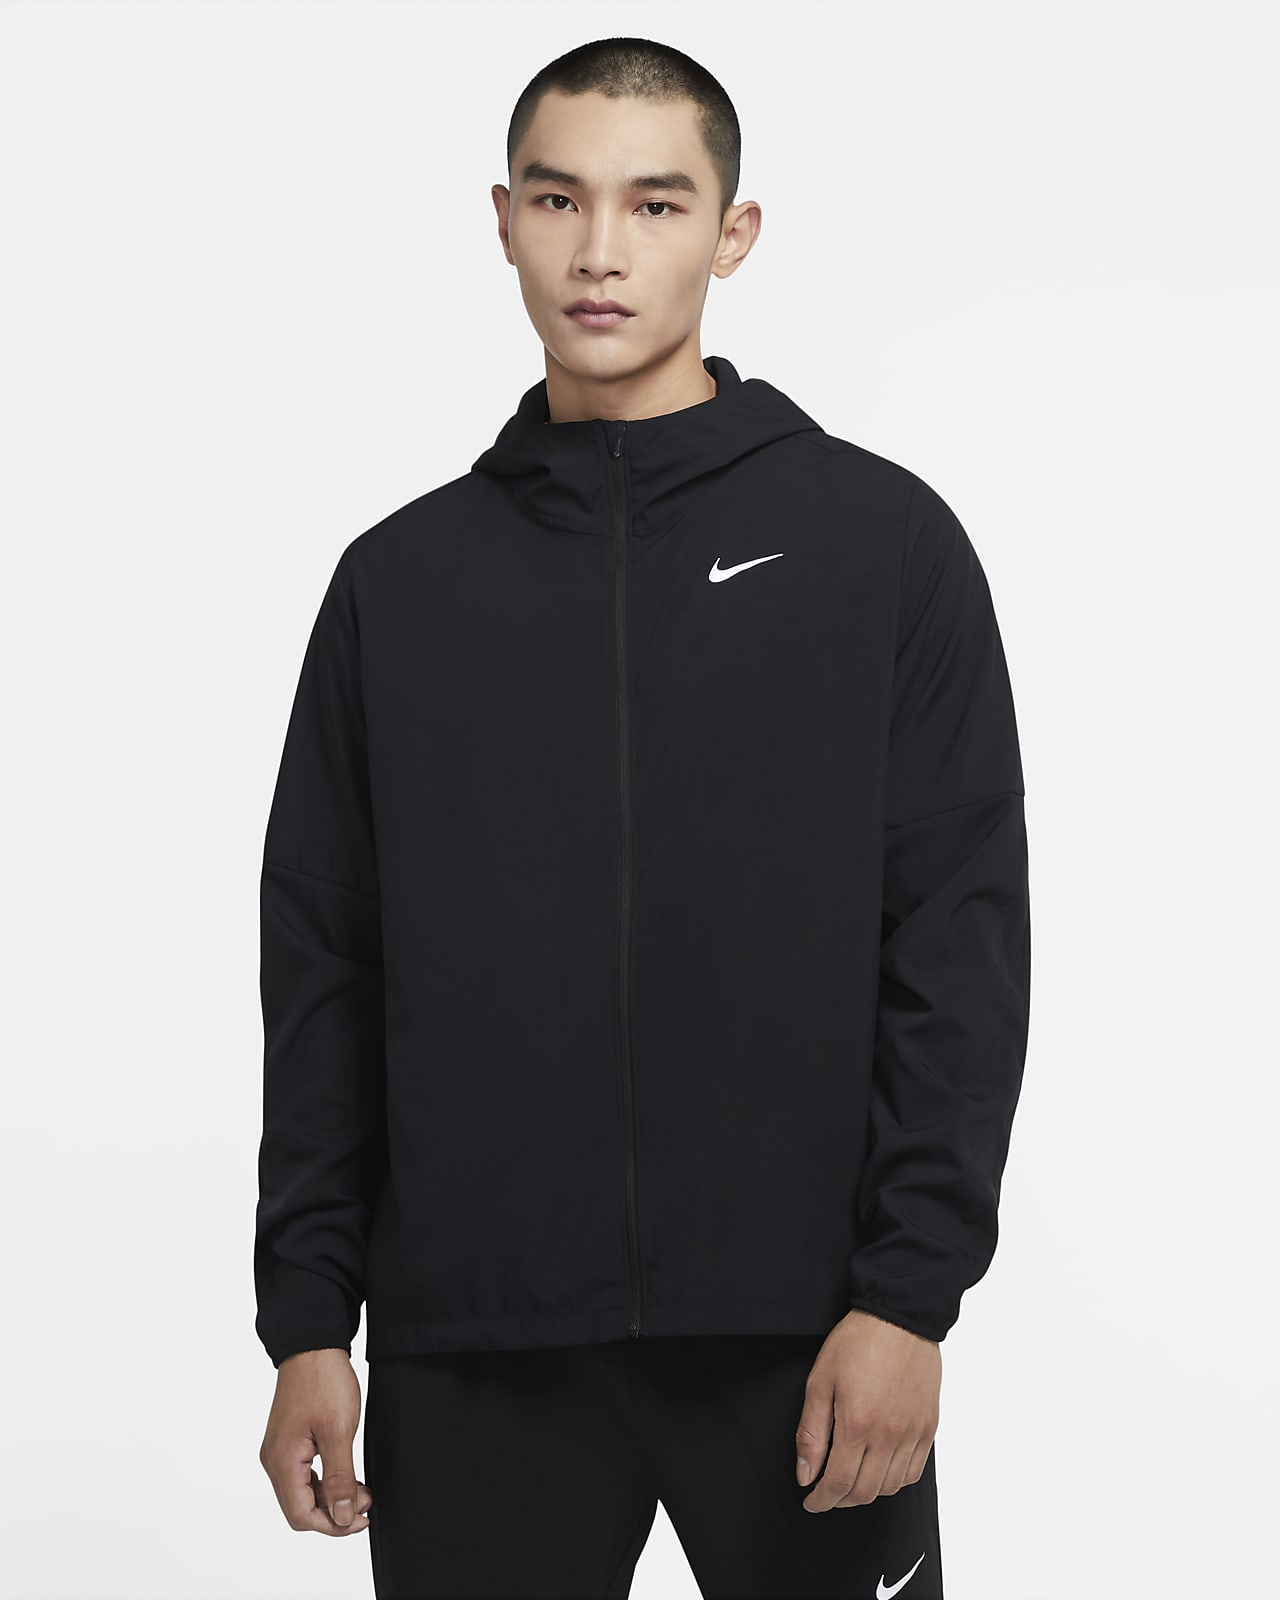 Nike Run Stripe Men's Woven Running Jacket